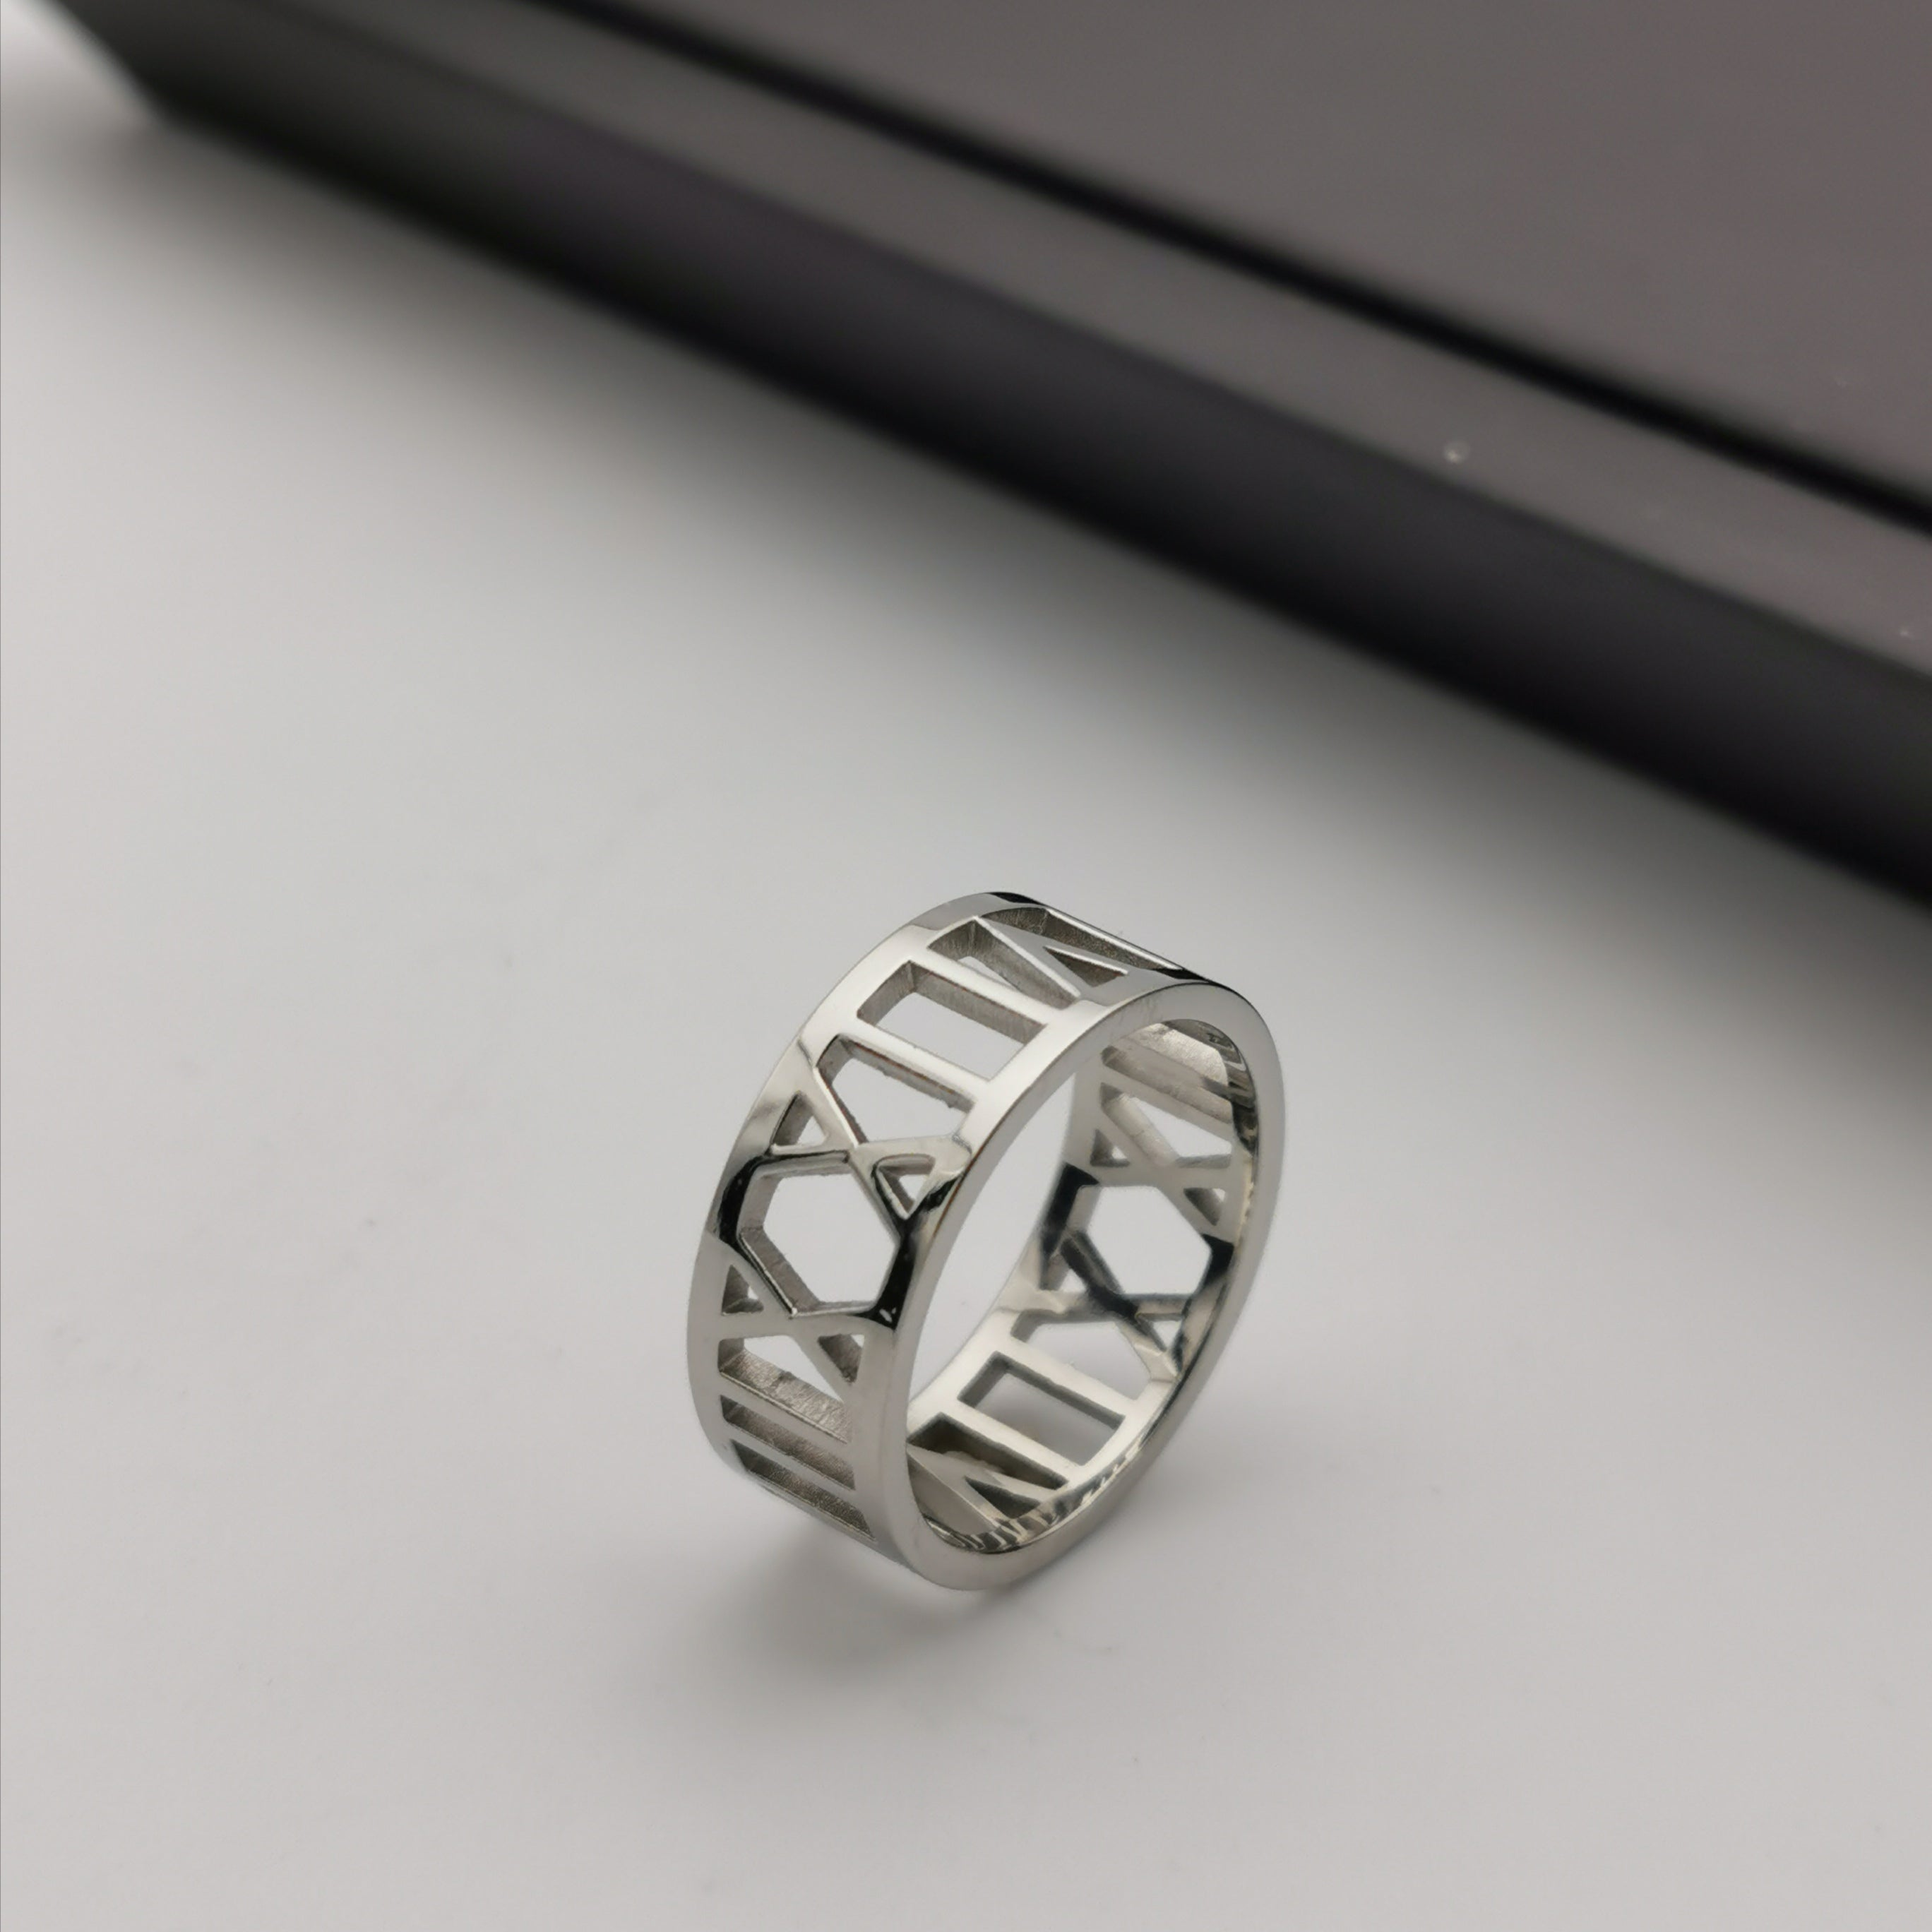 Stainless steel roma number ring